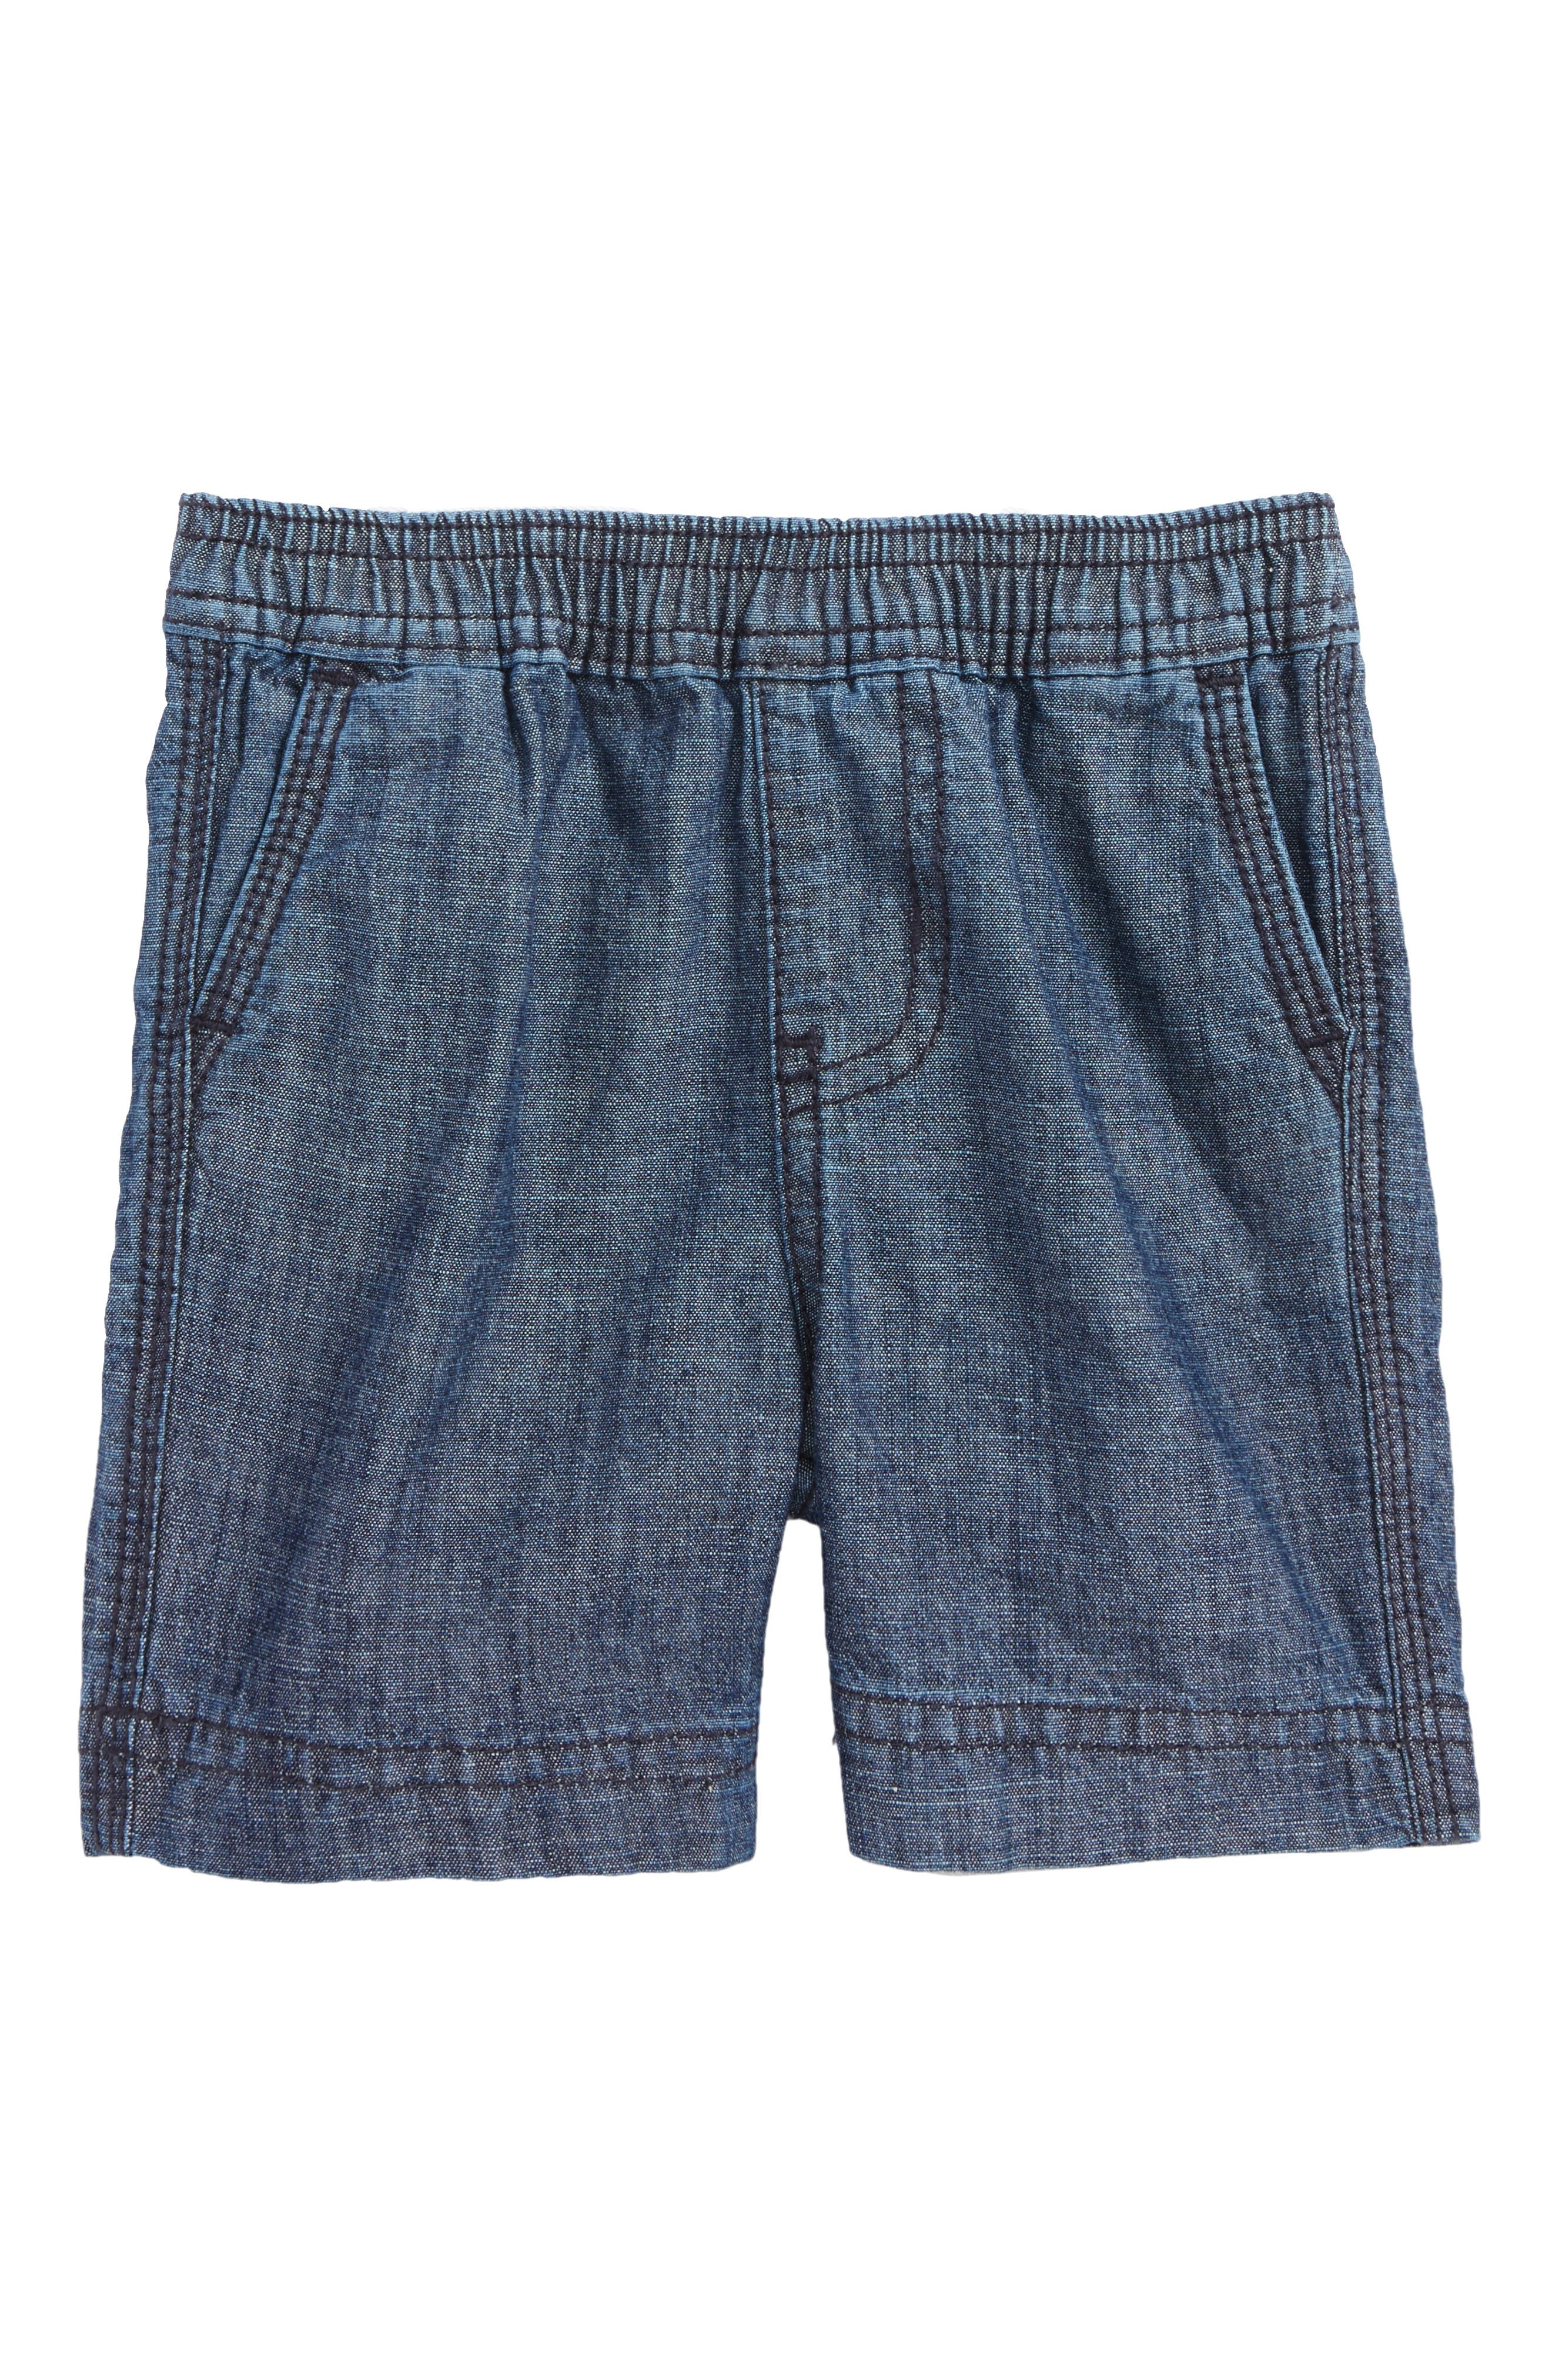 Easy Does It Chambray Shorts,                         Main,                         color, 410